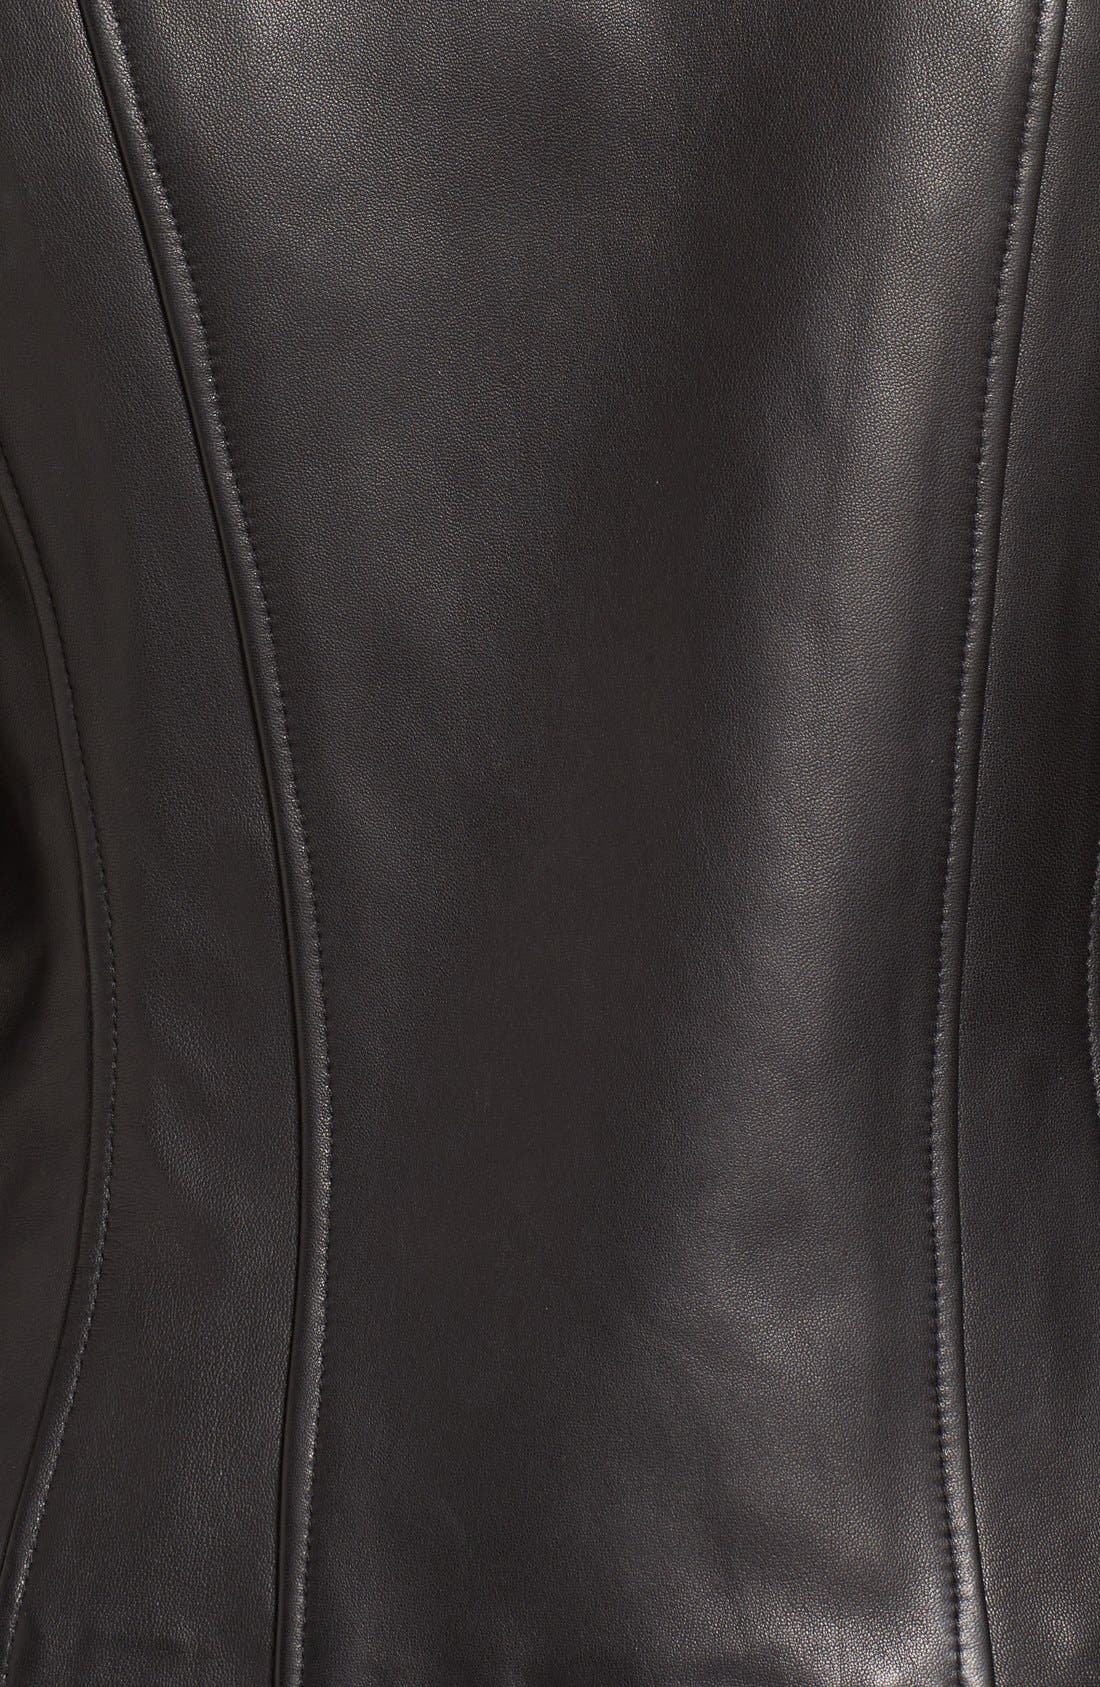 MACKAGE,                             Leather Jacket,                             Alternate thumbnail 5, color,                             001